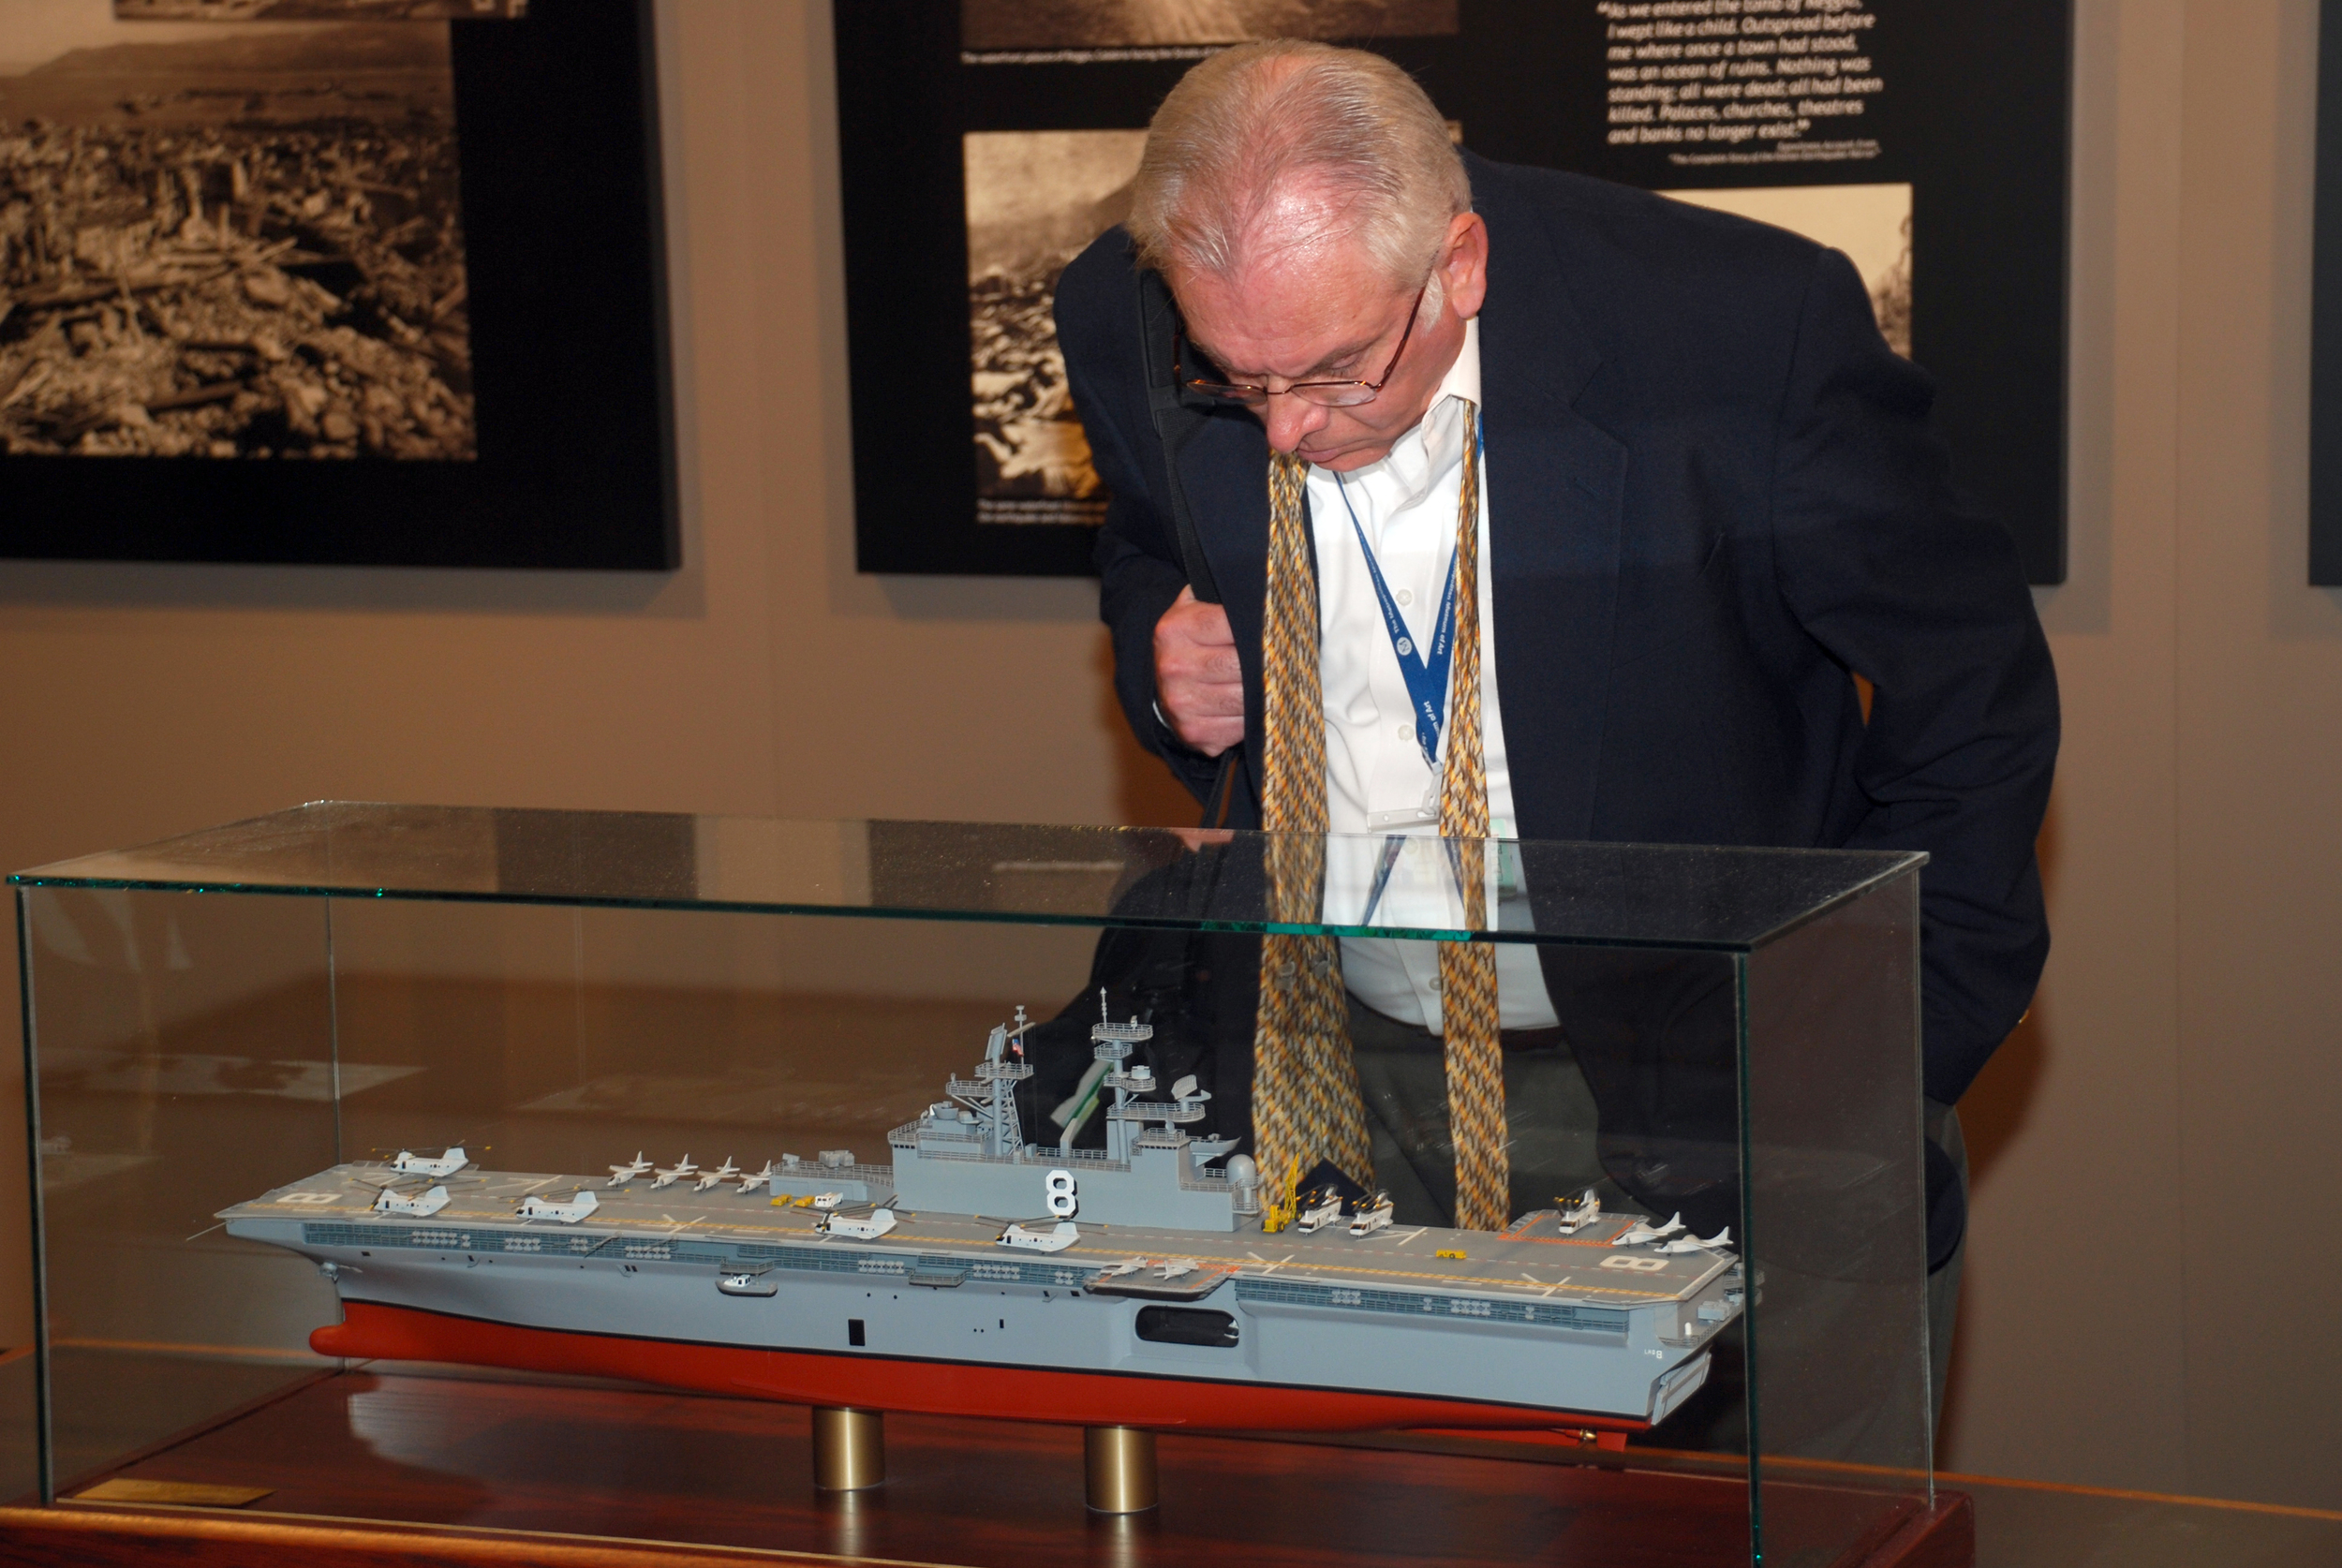 """A visitor to Grand Central Terminal in New York browses the """"Great White Fleet,"""" an exhibit presented by the Columbus Citizens Foundation in collaboration with the Office of the Secretary of the Navy."""